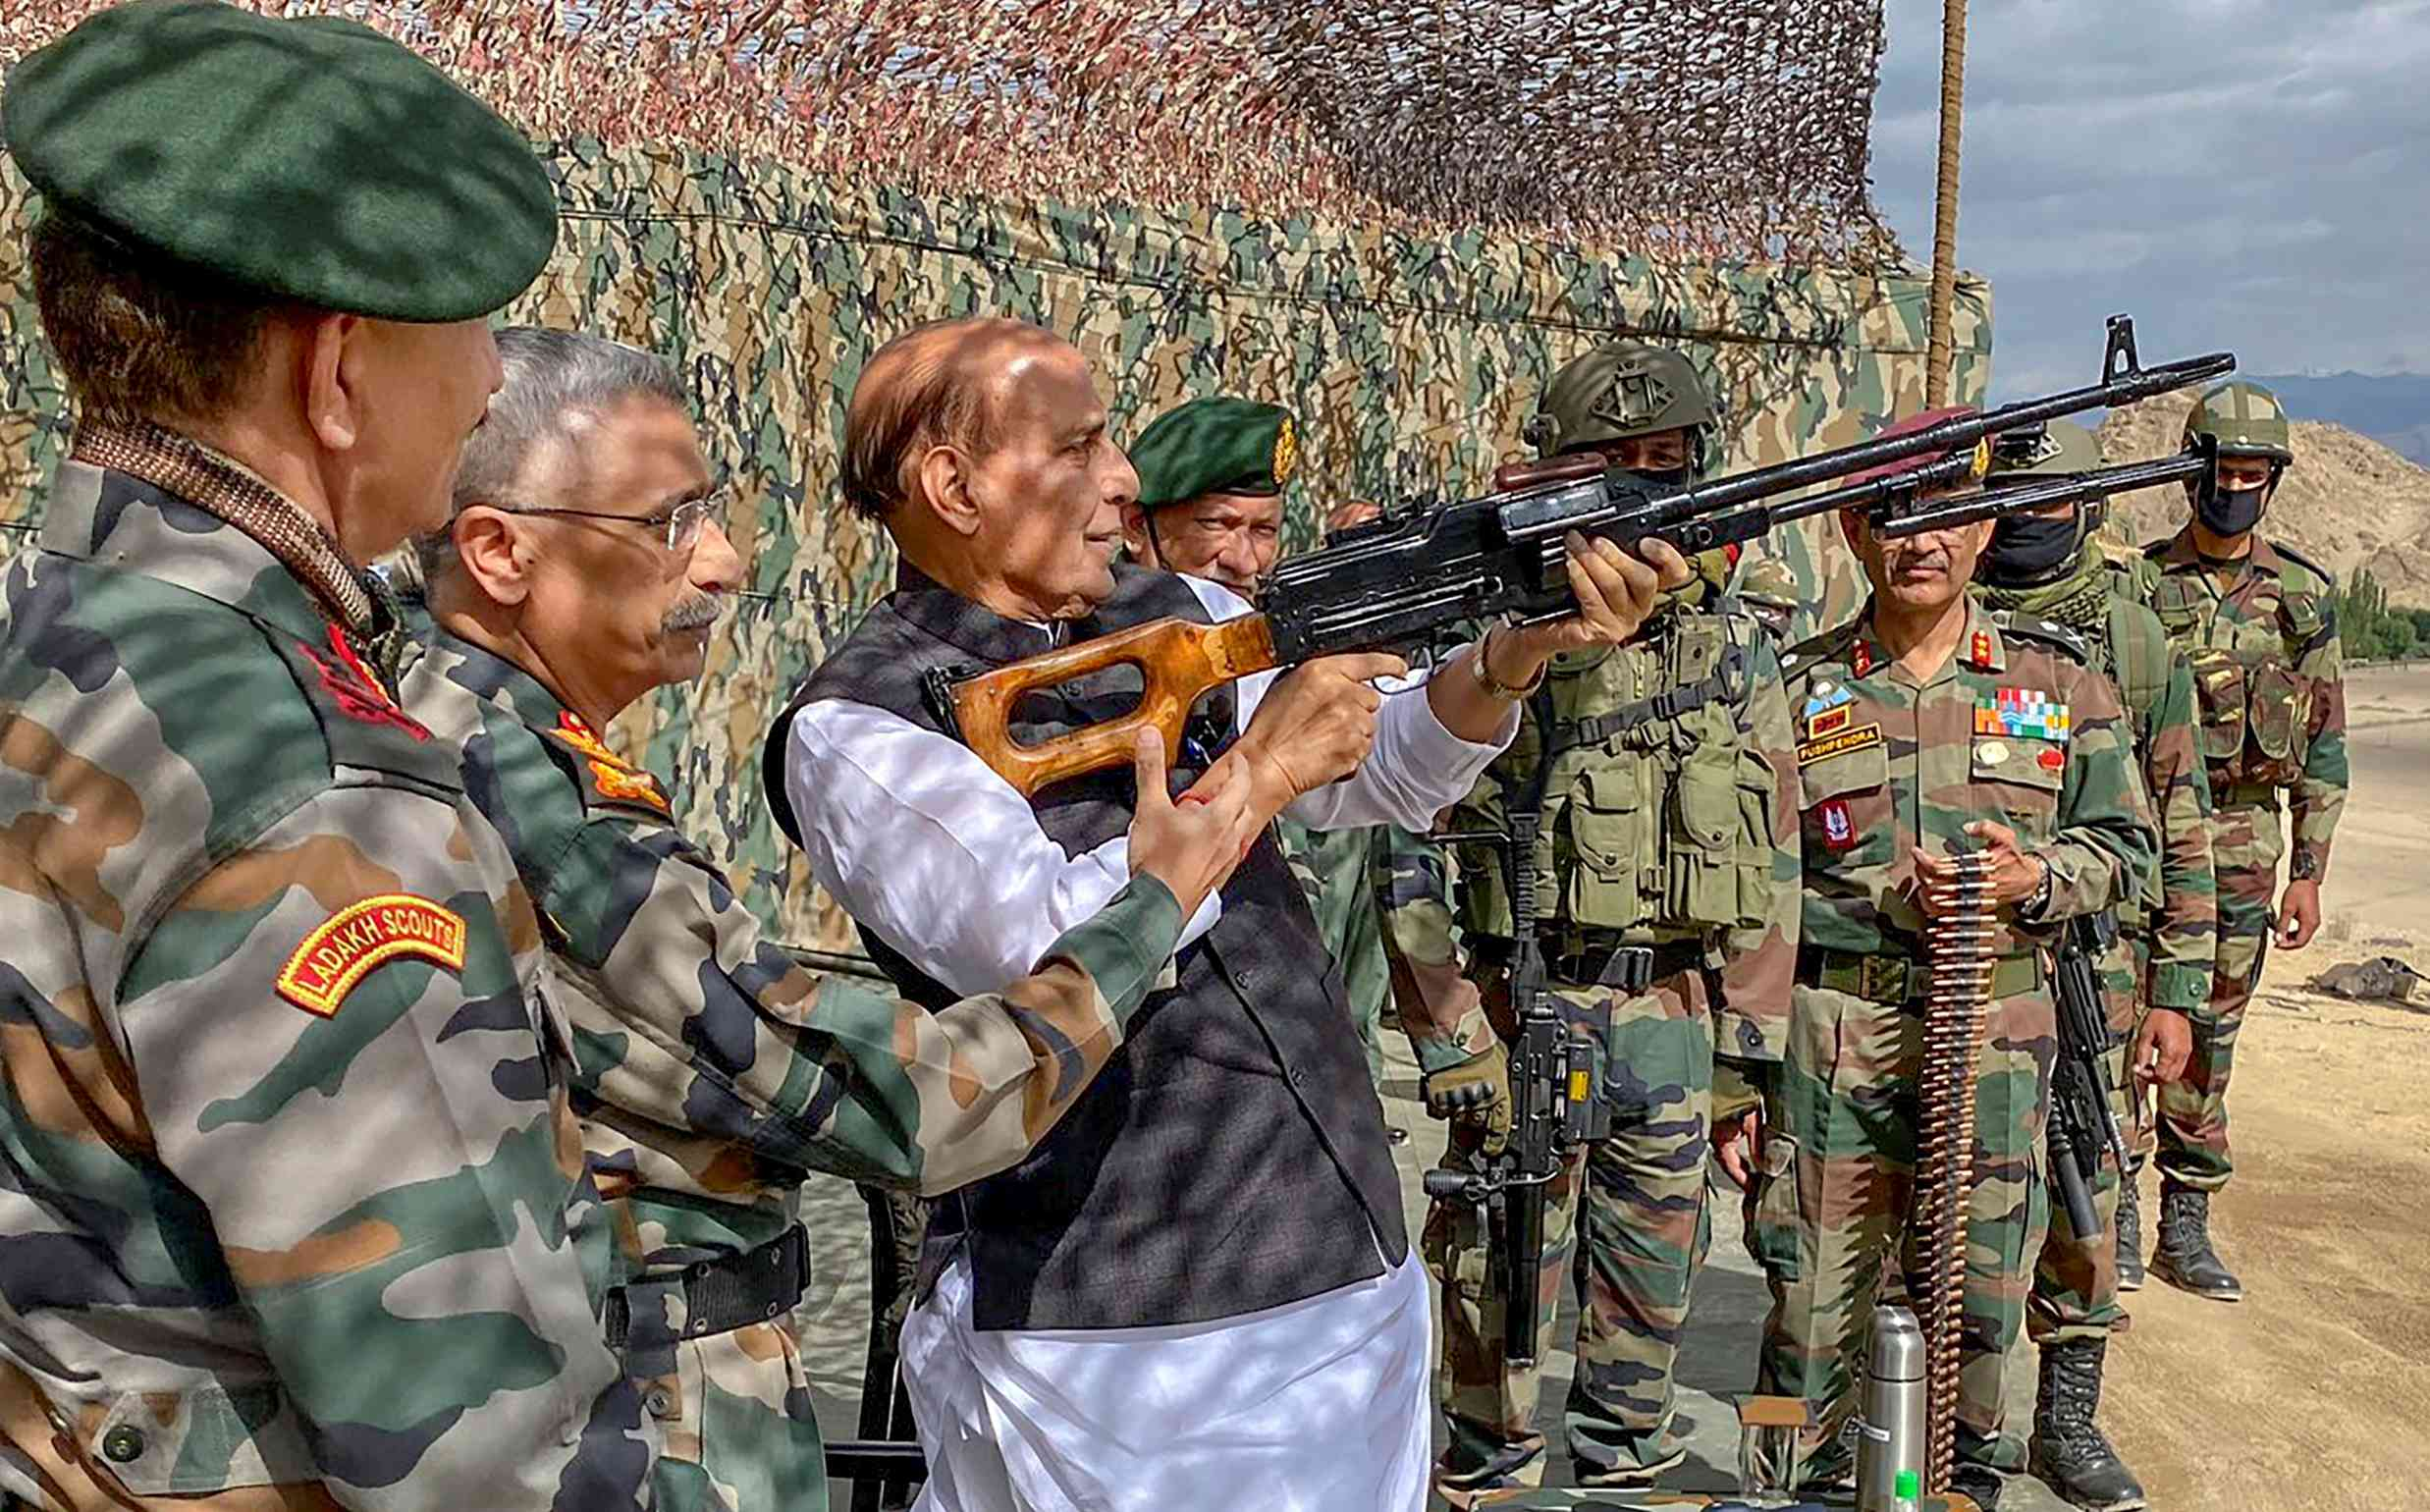 Defence minister Rajnath Singh check scoping rifles during a para dropping exercise in Skatna, Leh, Friday, July 17, 2020.